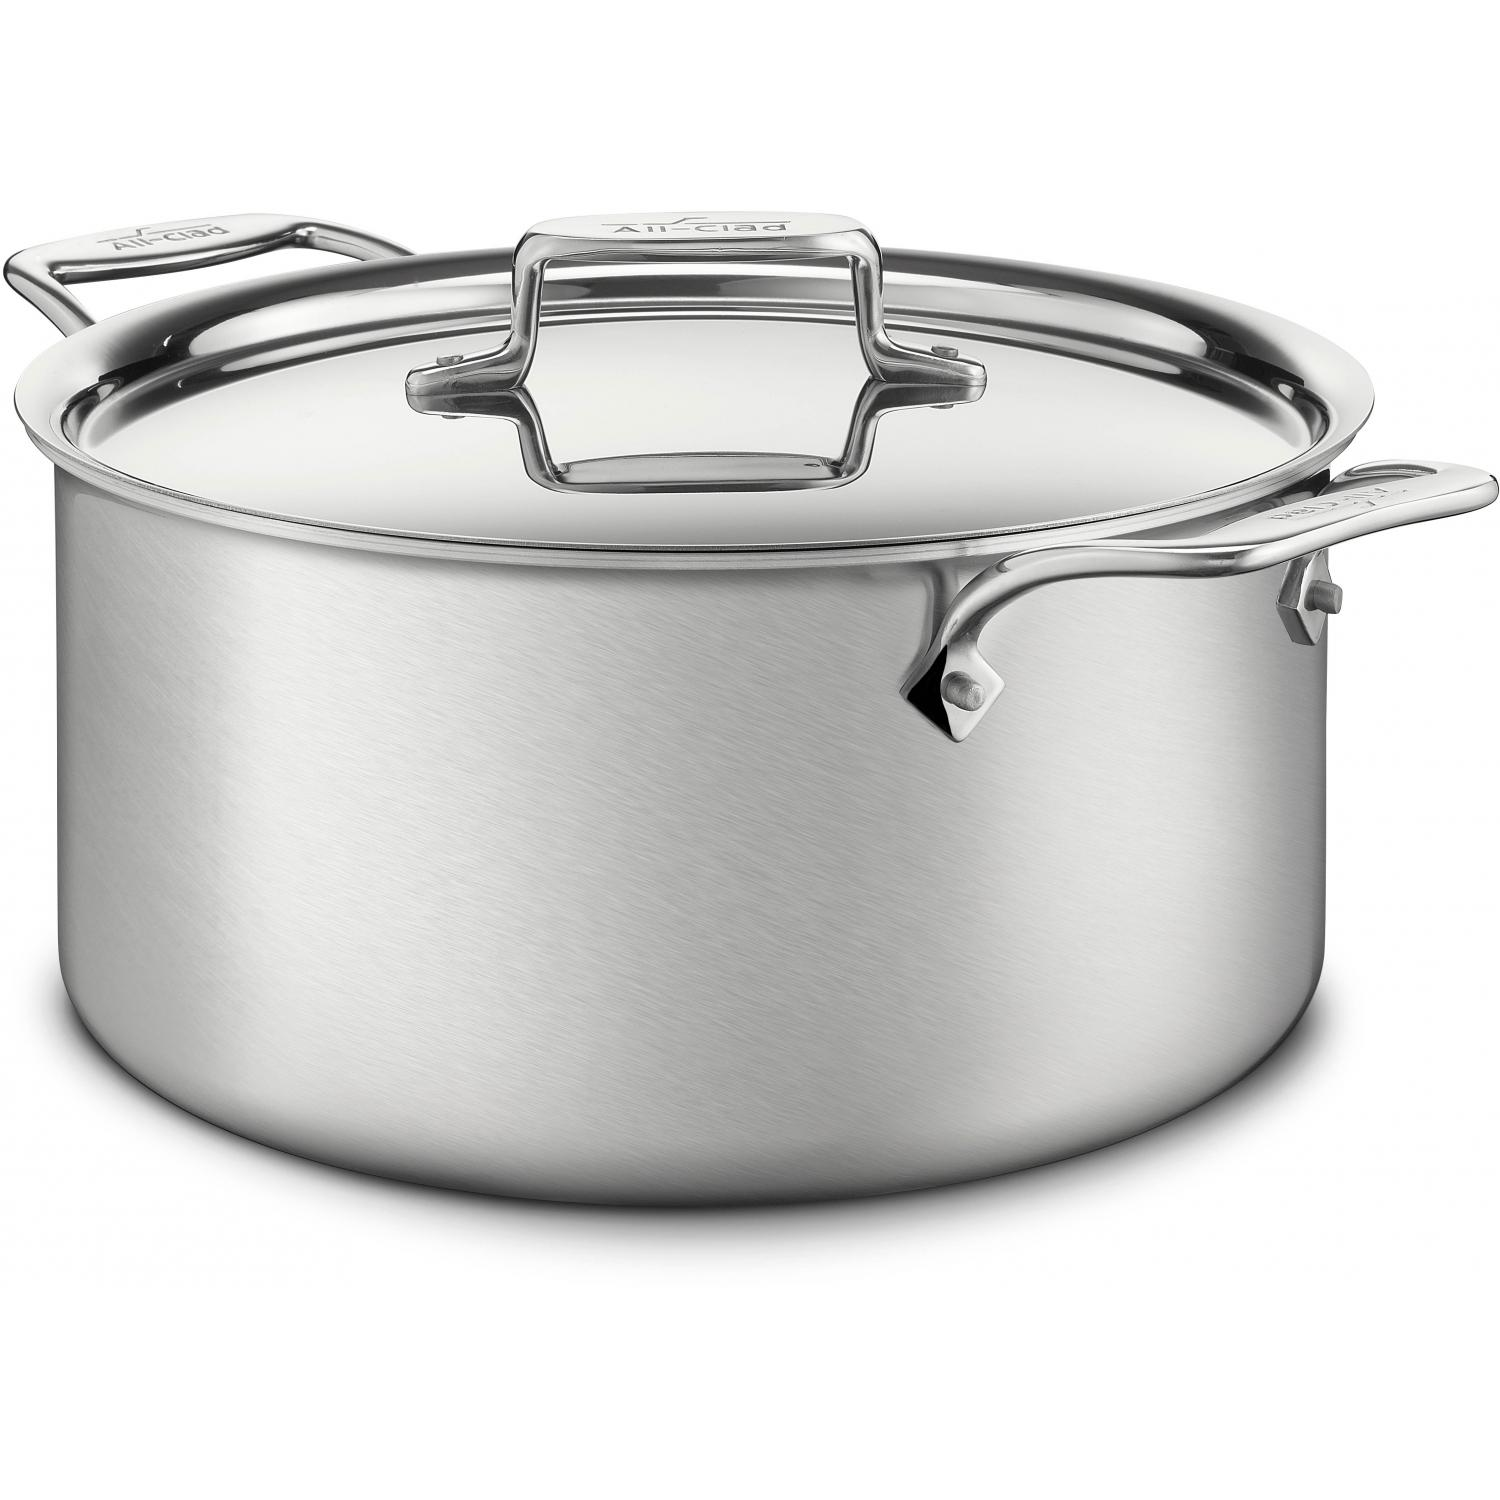 All-Clad D5 Stainless 8-Quart Stock Pot With Lid